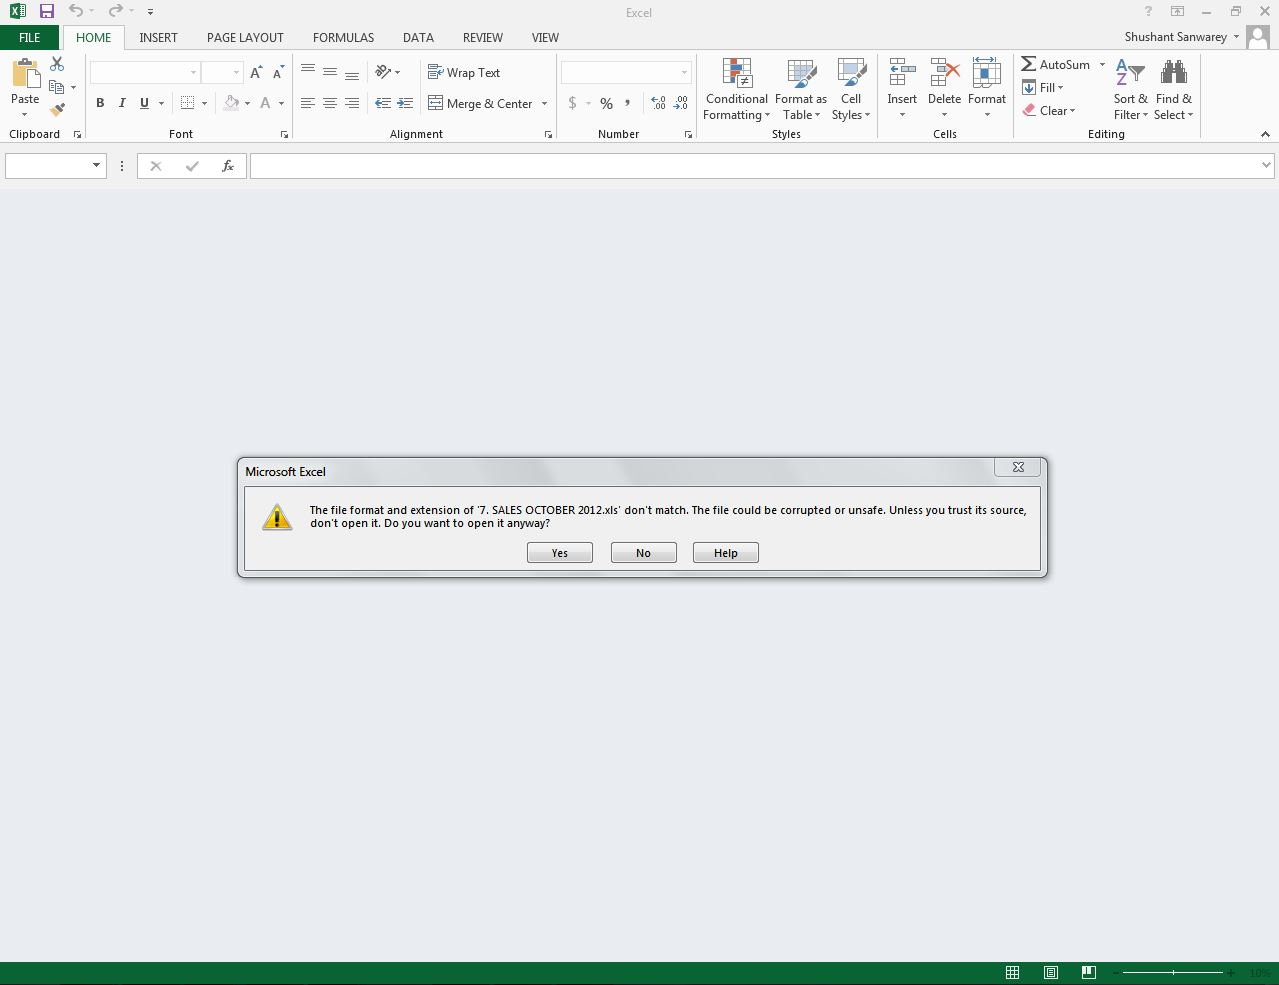 Excel Spreadsheet Corrupted Repair Intended For Corrupted Excel File  Super User